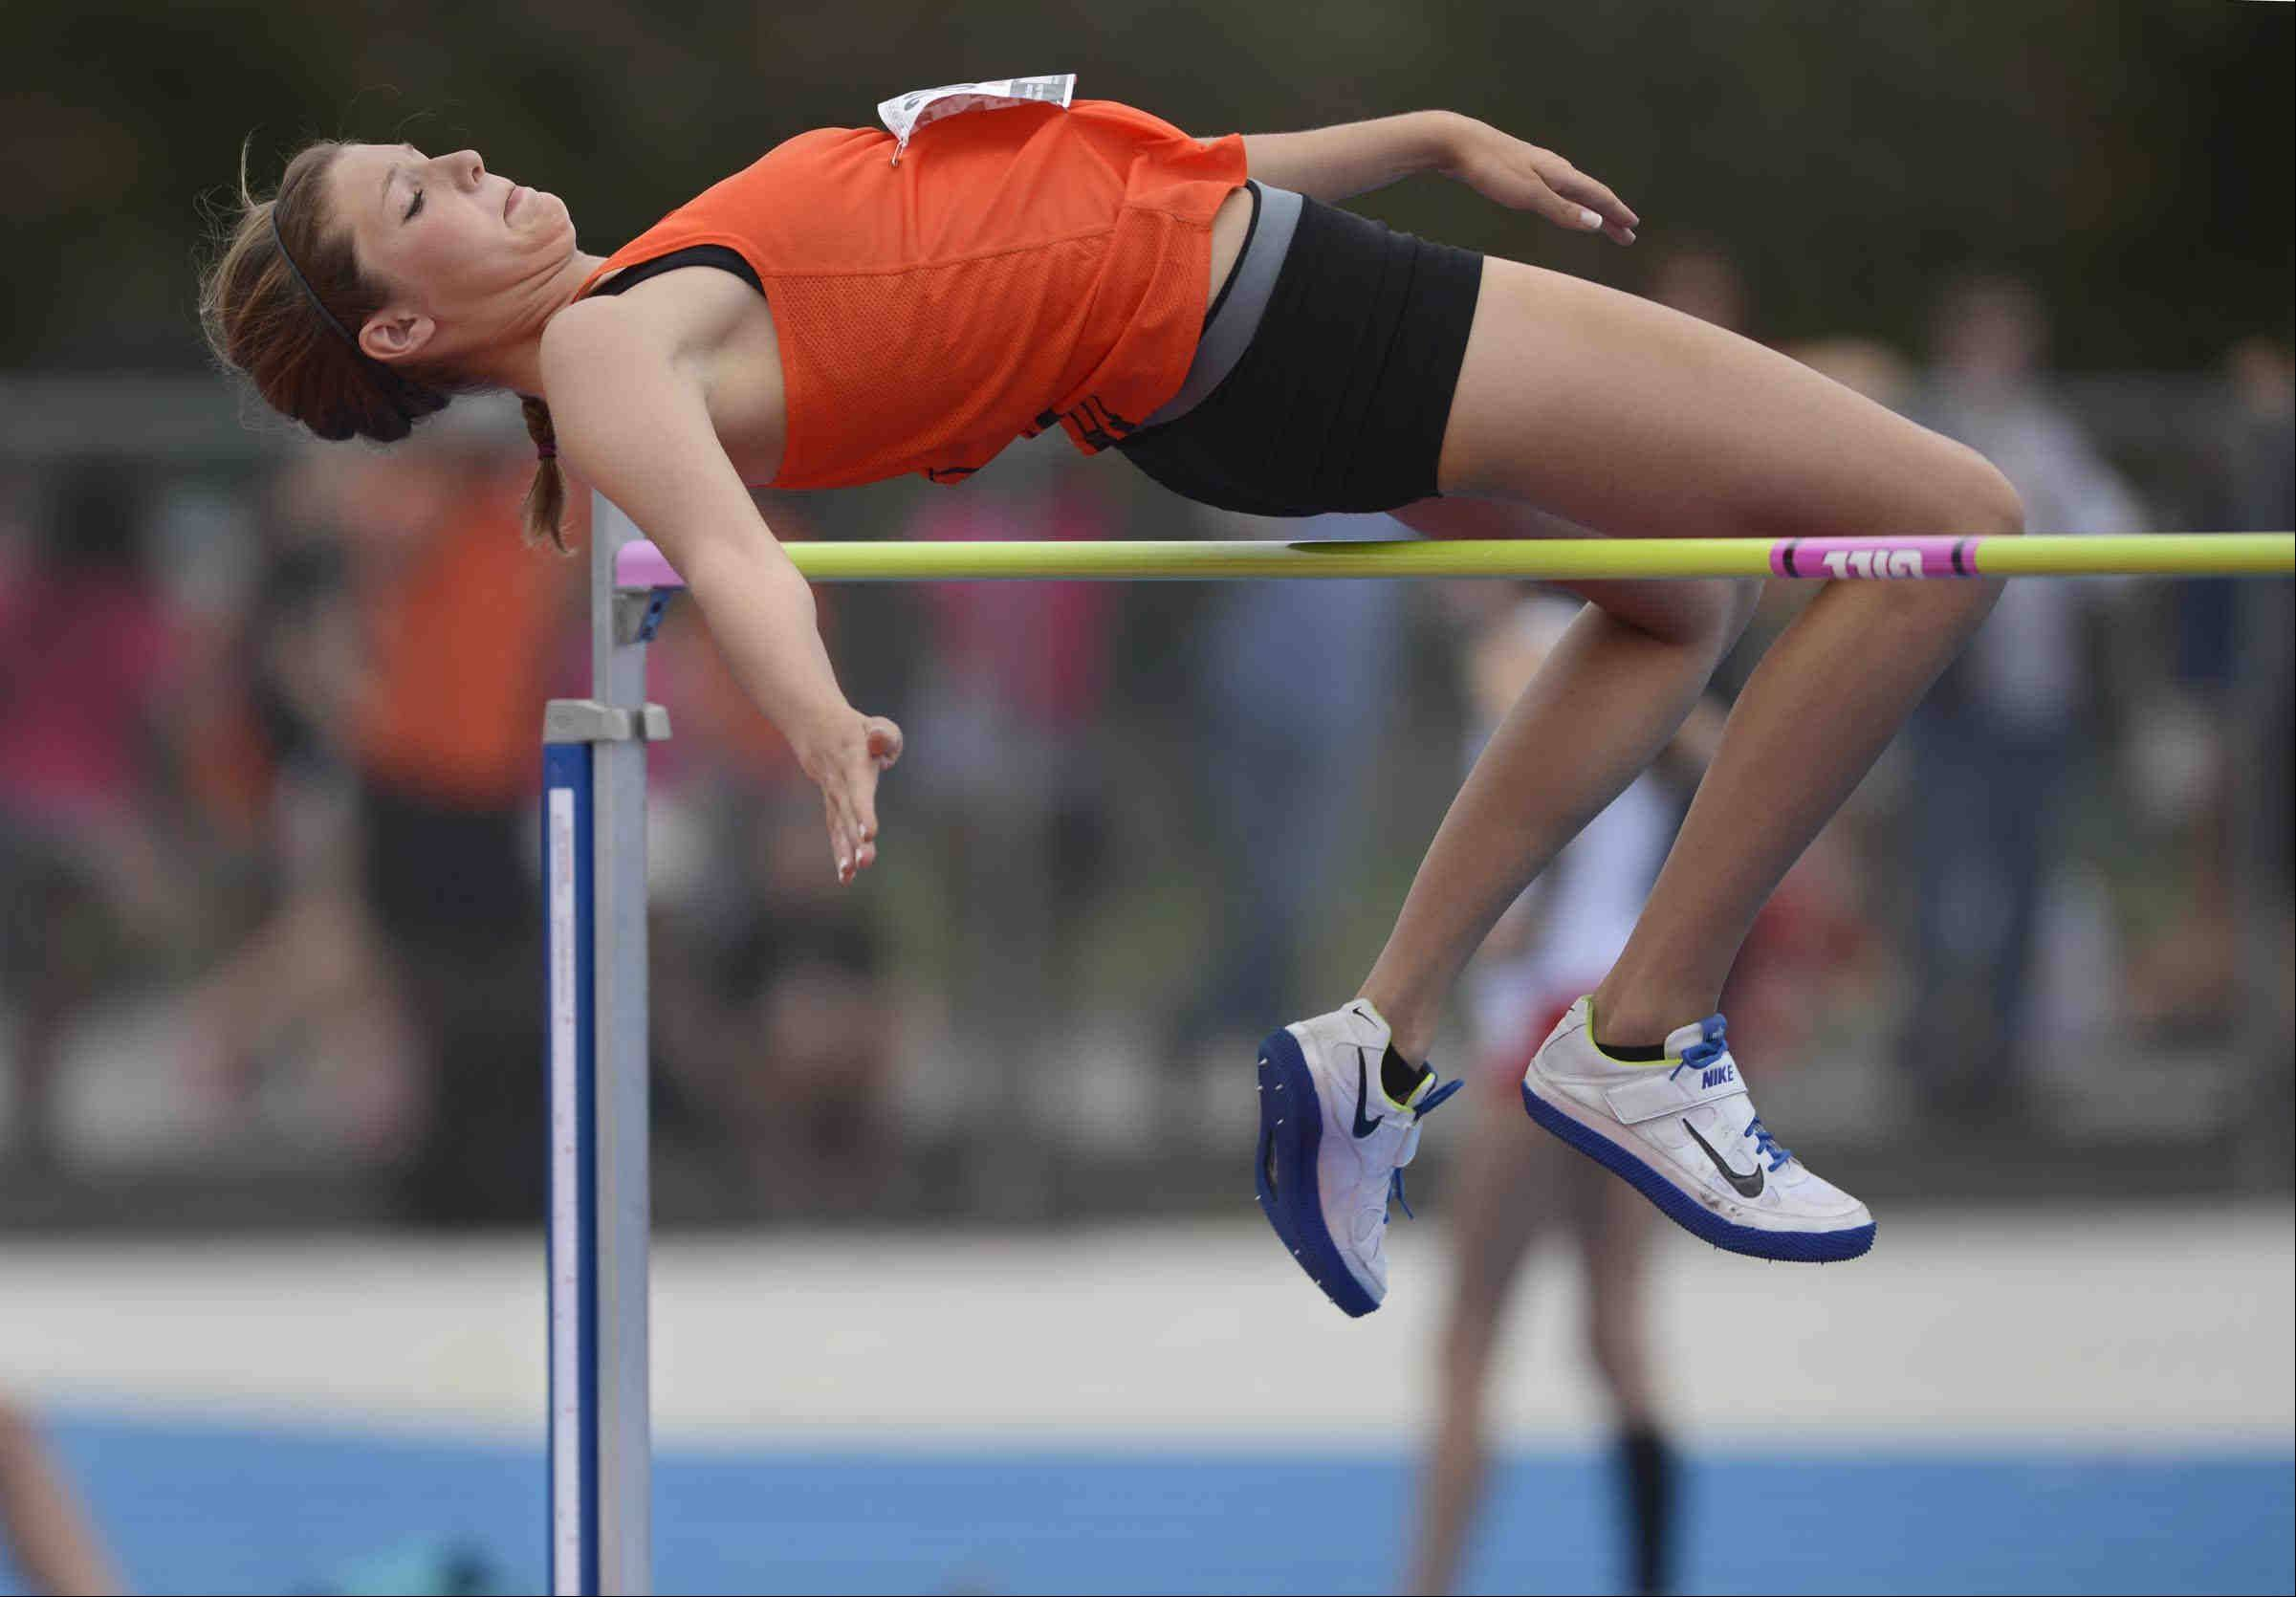 Wheaton Warrenville South's Erin Zappia clears the bar during Friday's high jump event at the Class 3A girls state track and field preliminaries in Charleston.